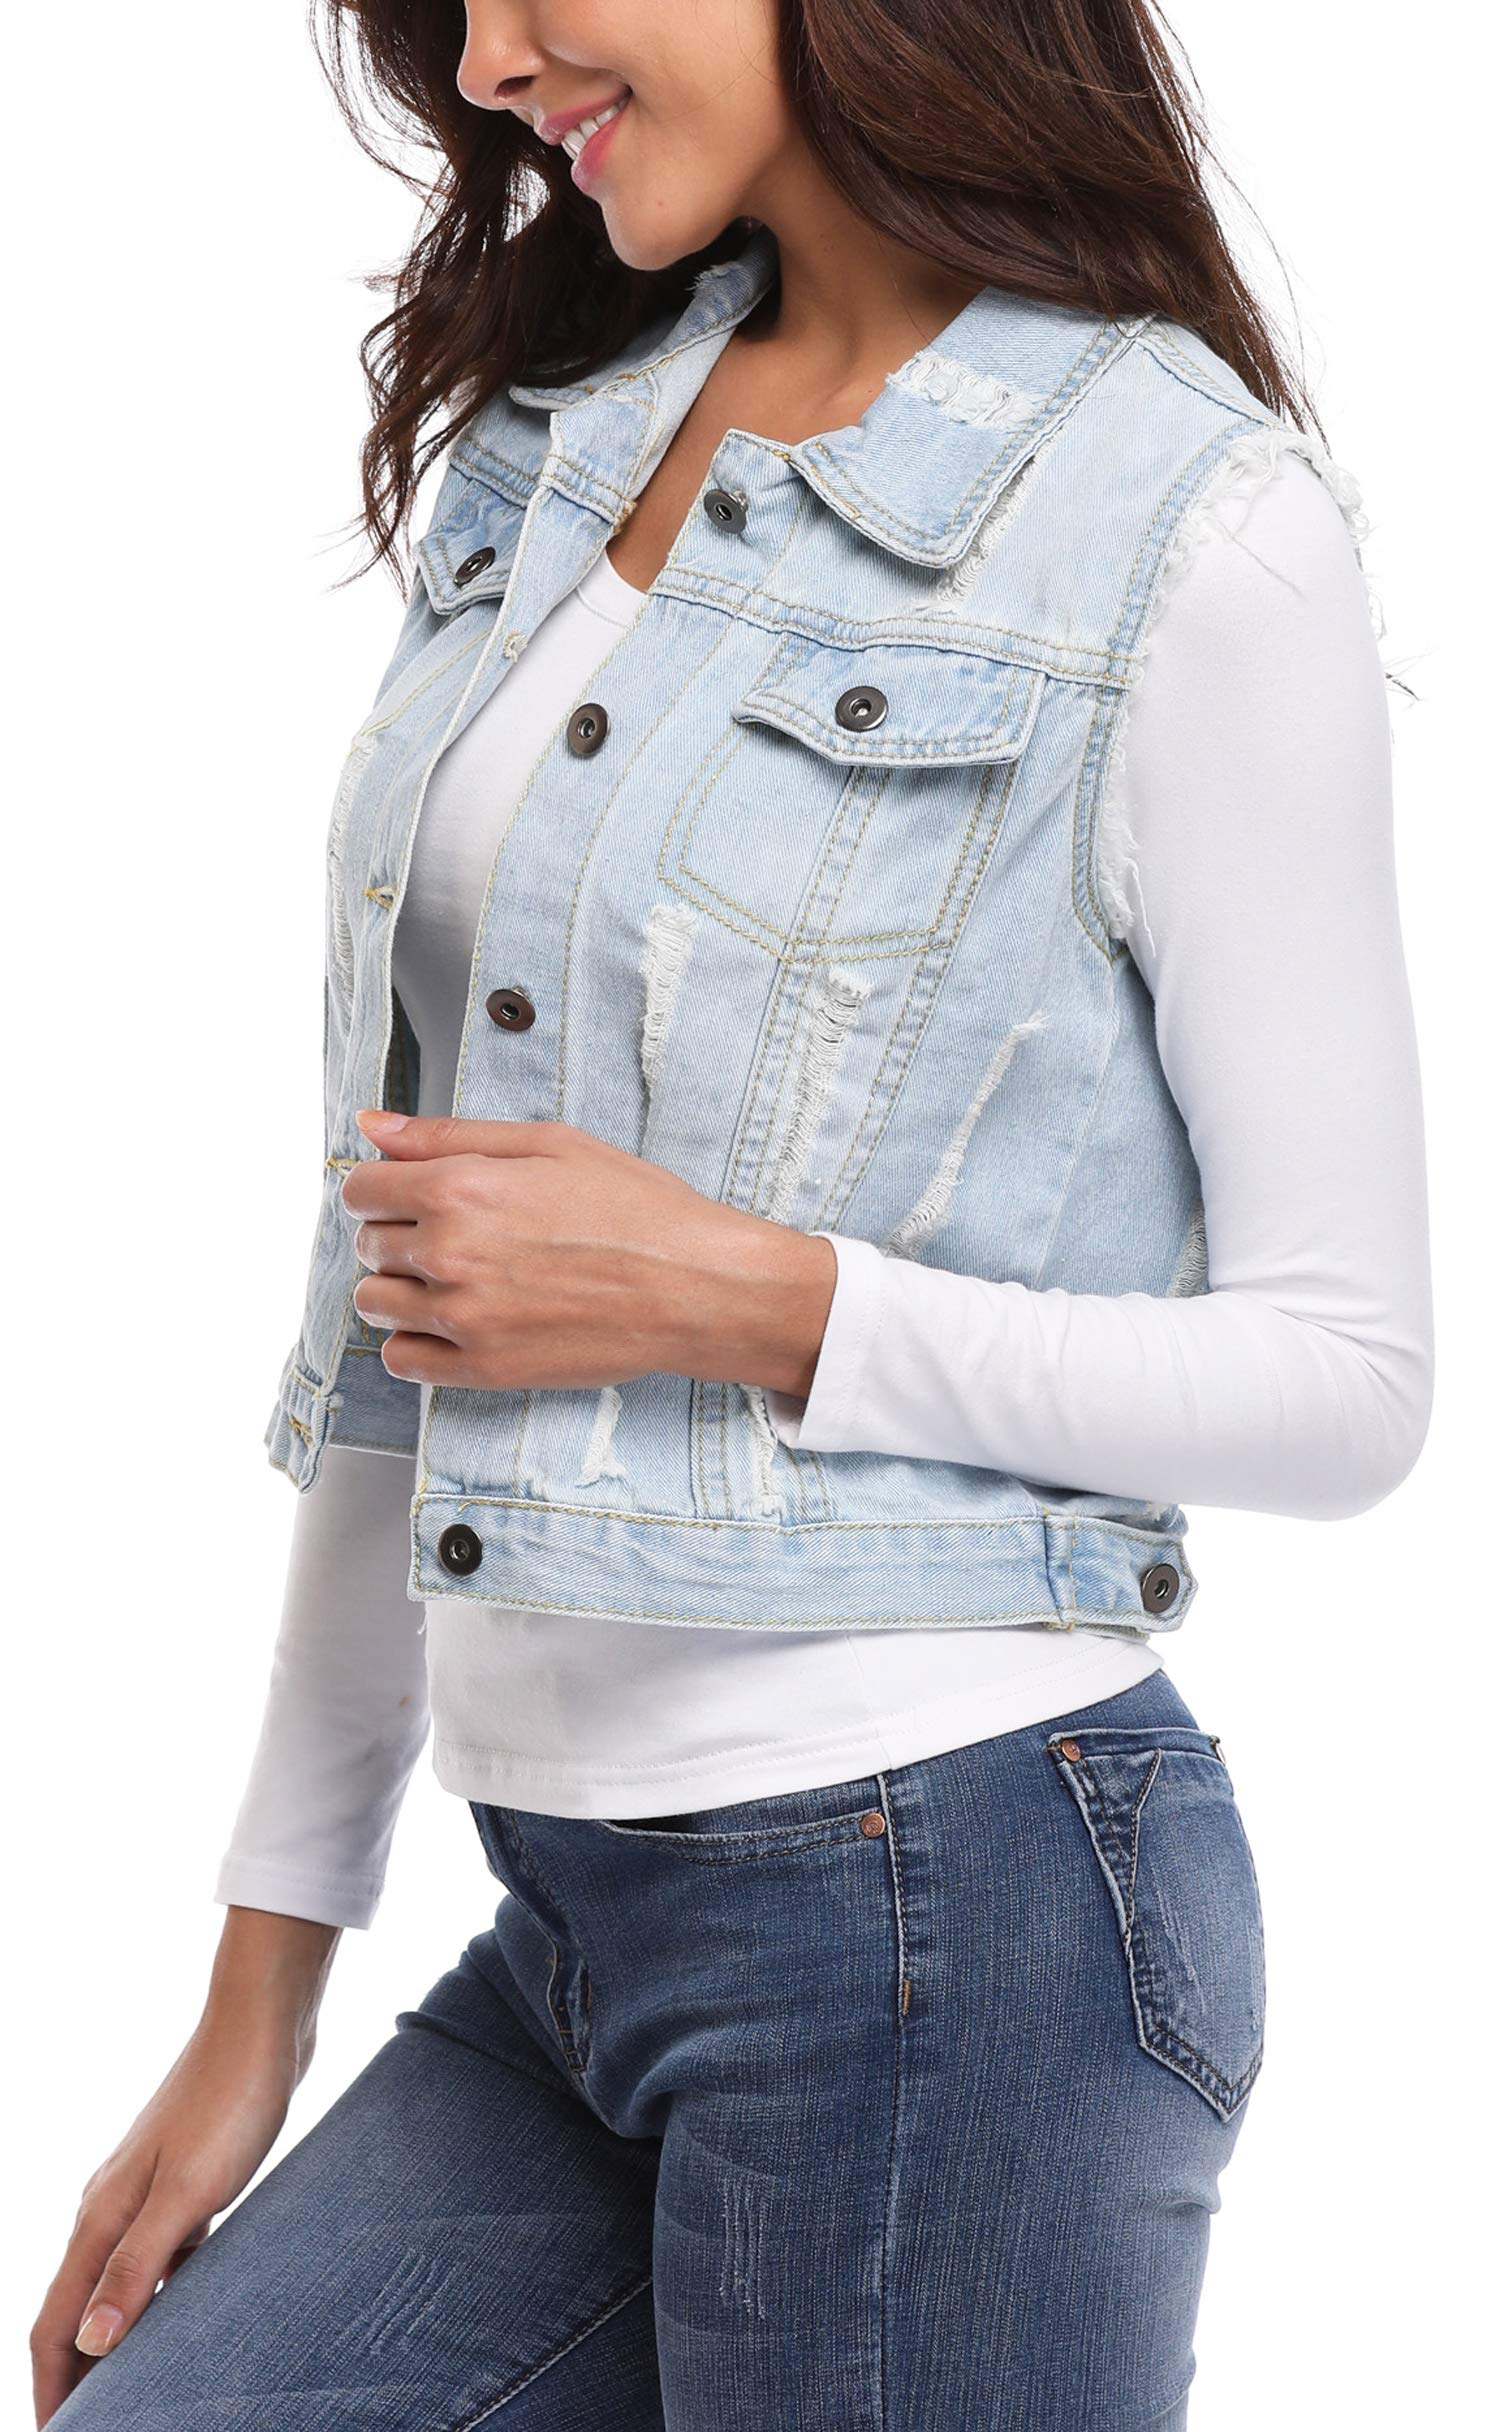 MISS MOLY Women's Sleeveless Denim Jacket Vest Turn Down Collar Buttoned Frayed Washed w 2 Chest Flap Pockets Light Blue XL by MISS MOLY (Image #6)